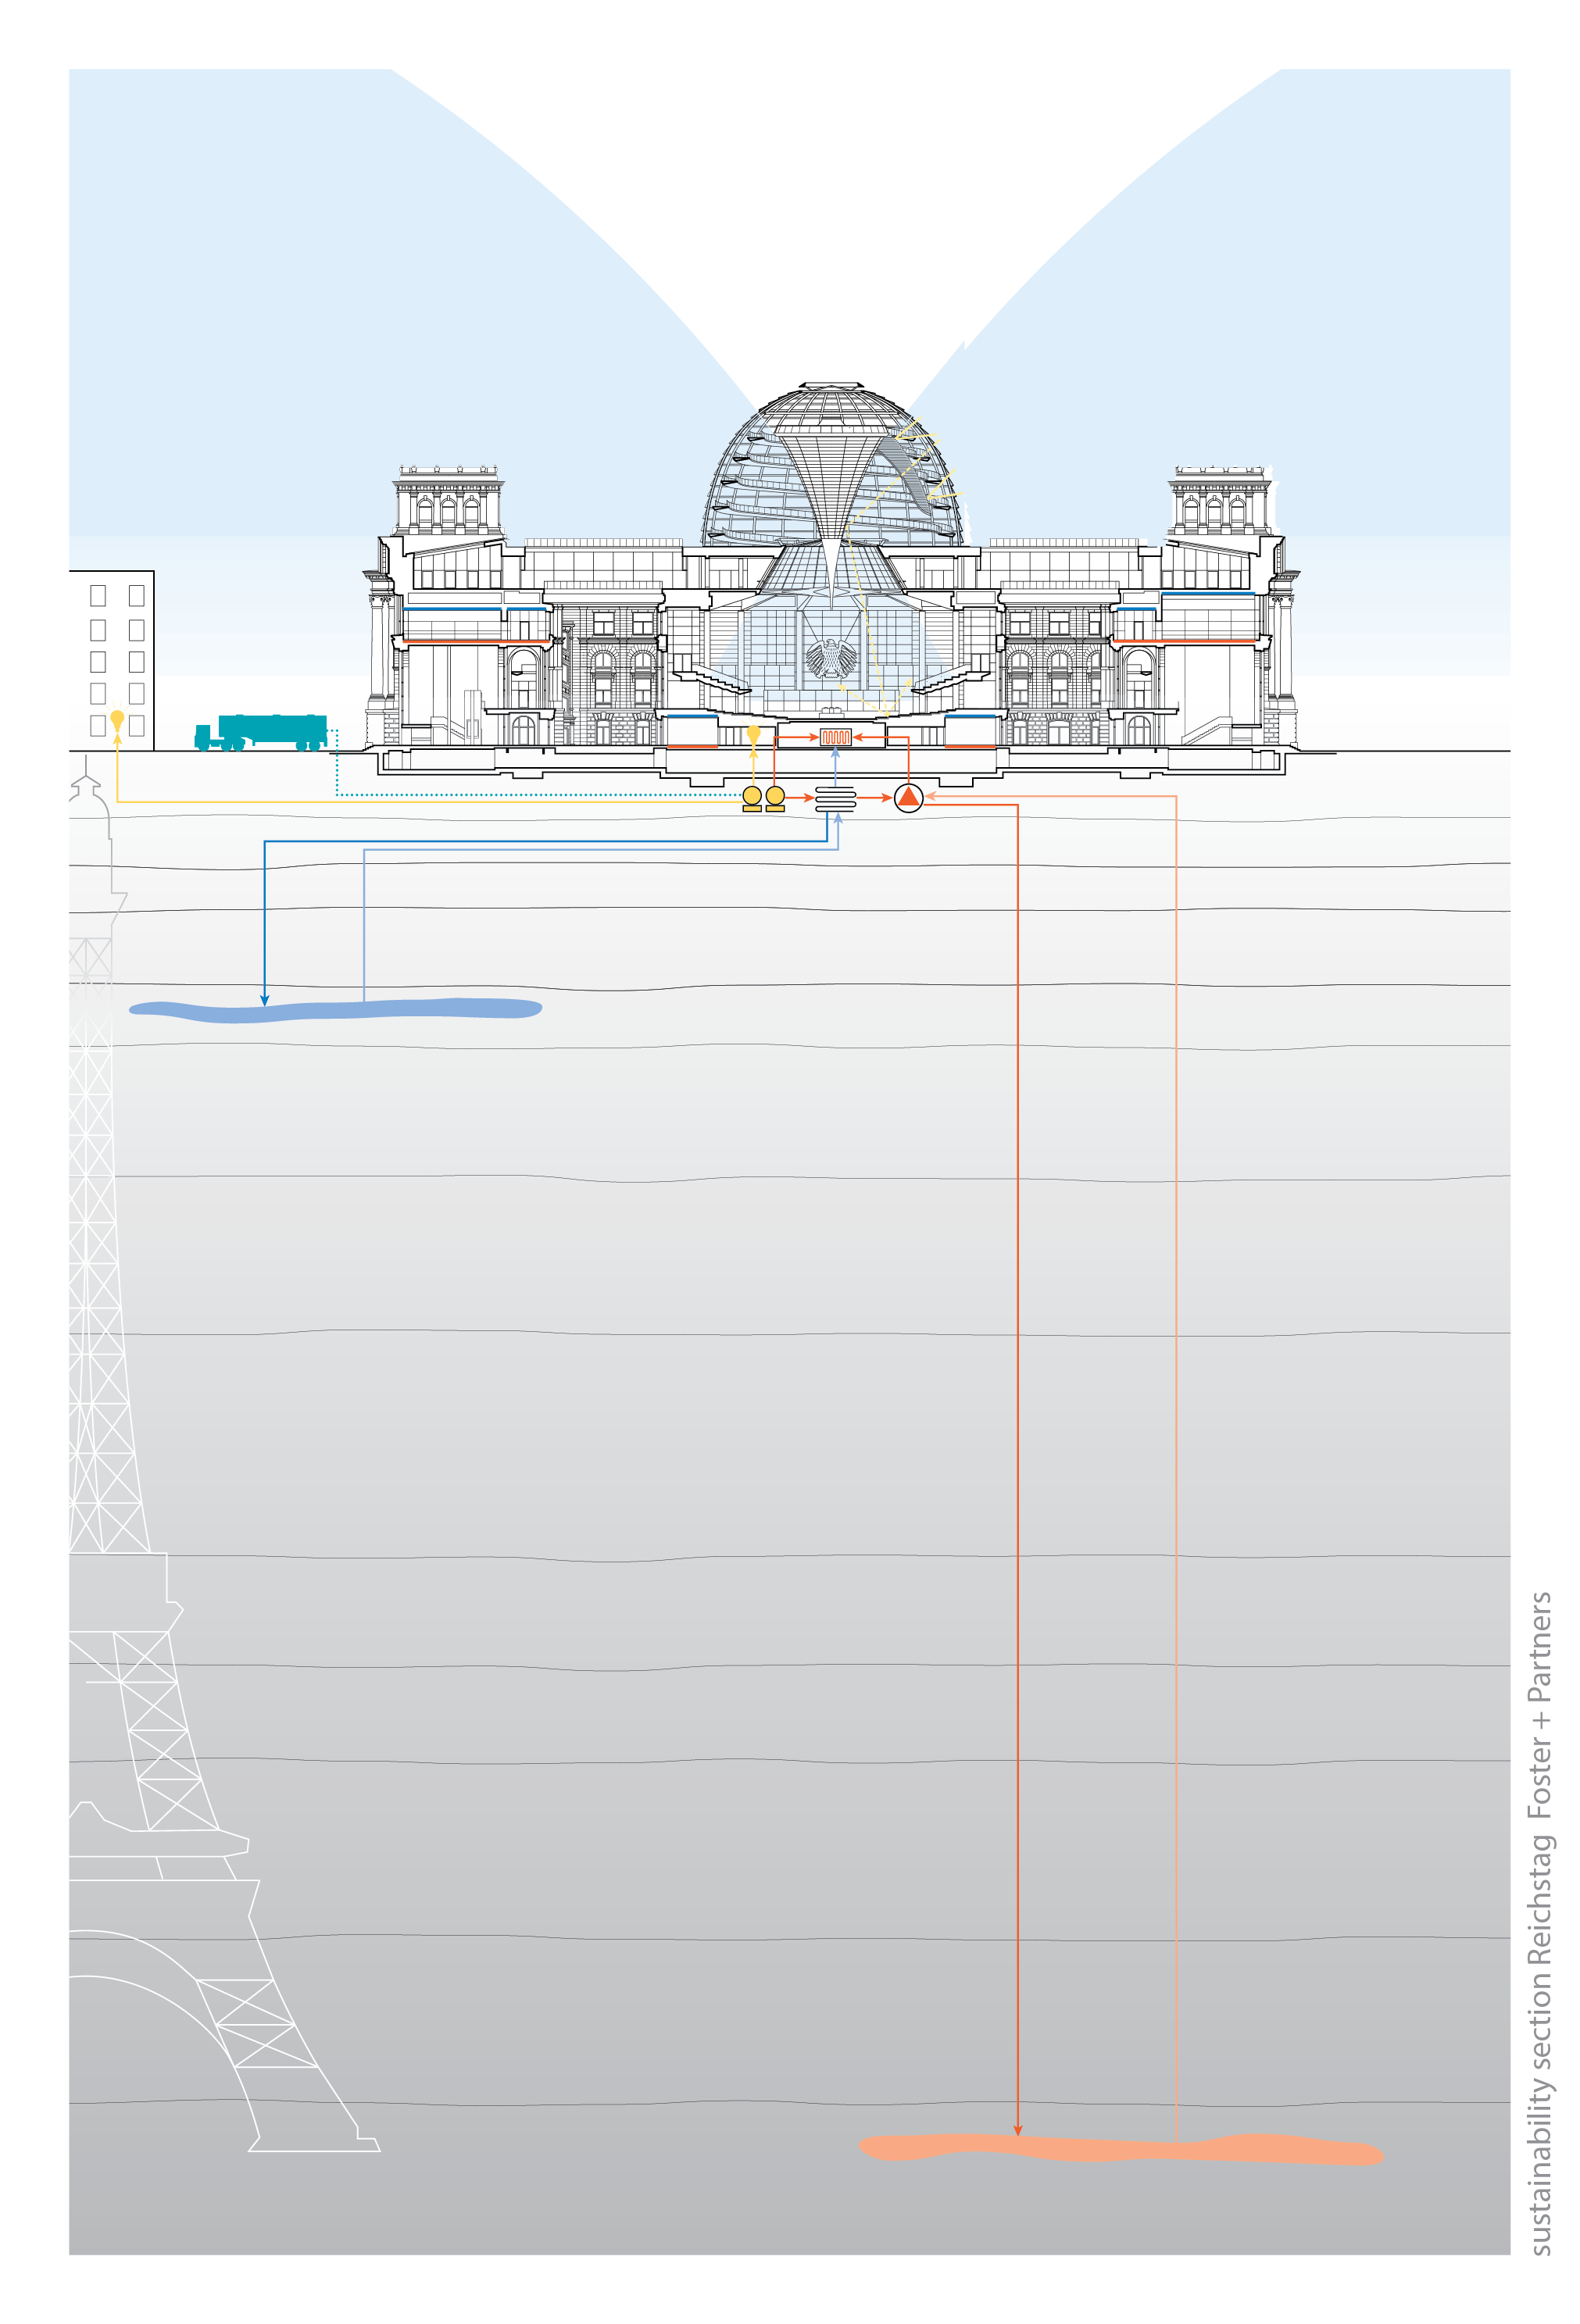 Reichstag_EnergySection